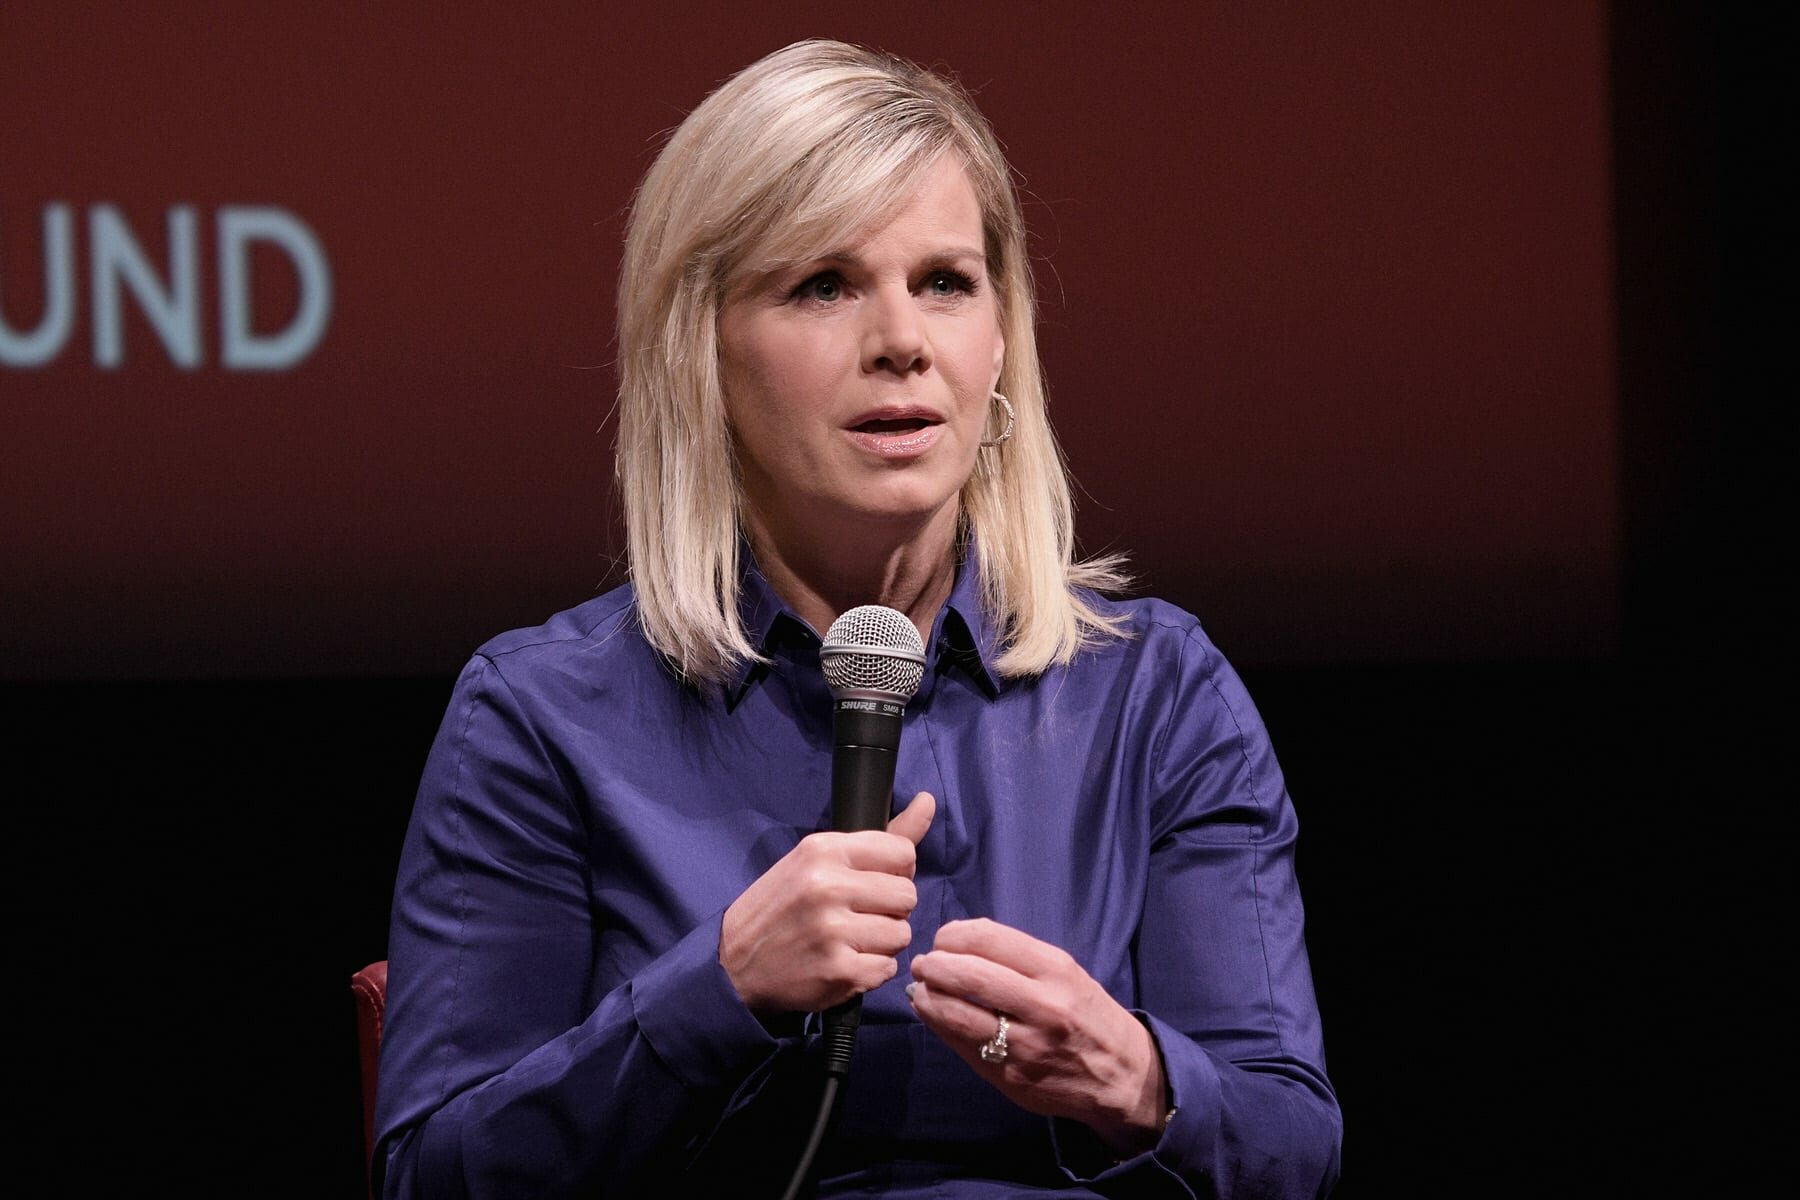 Gretchen Carlson accused Roger Ailes of harassment.